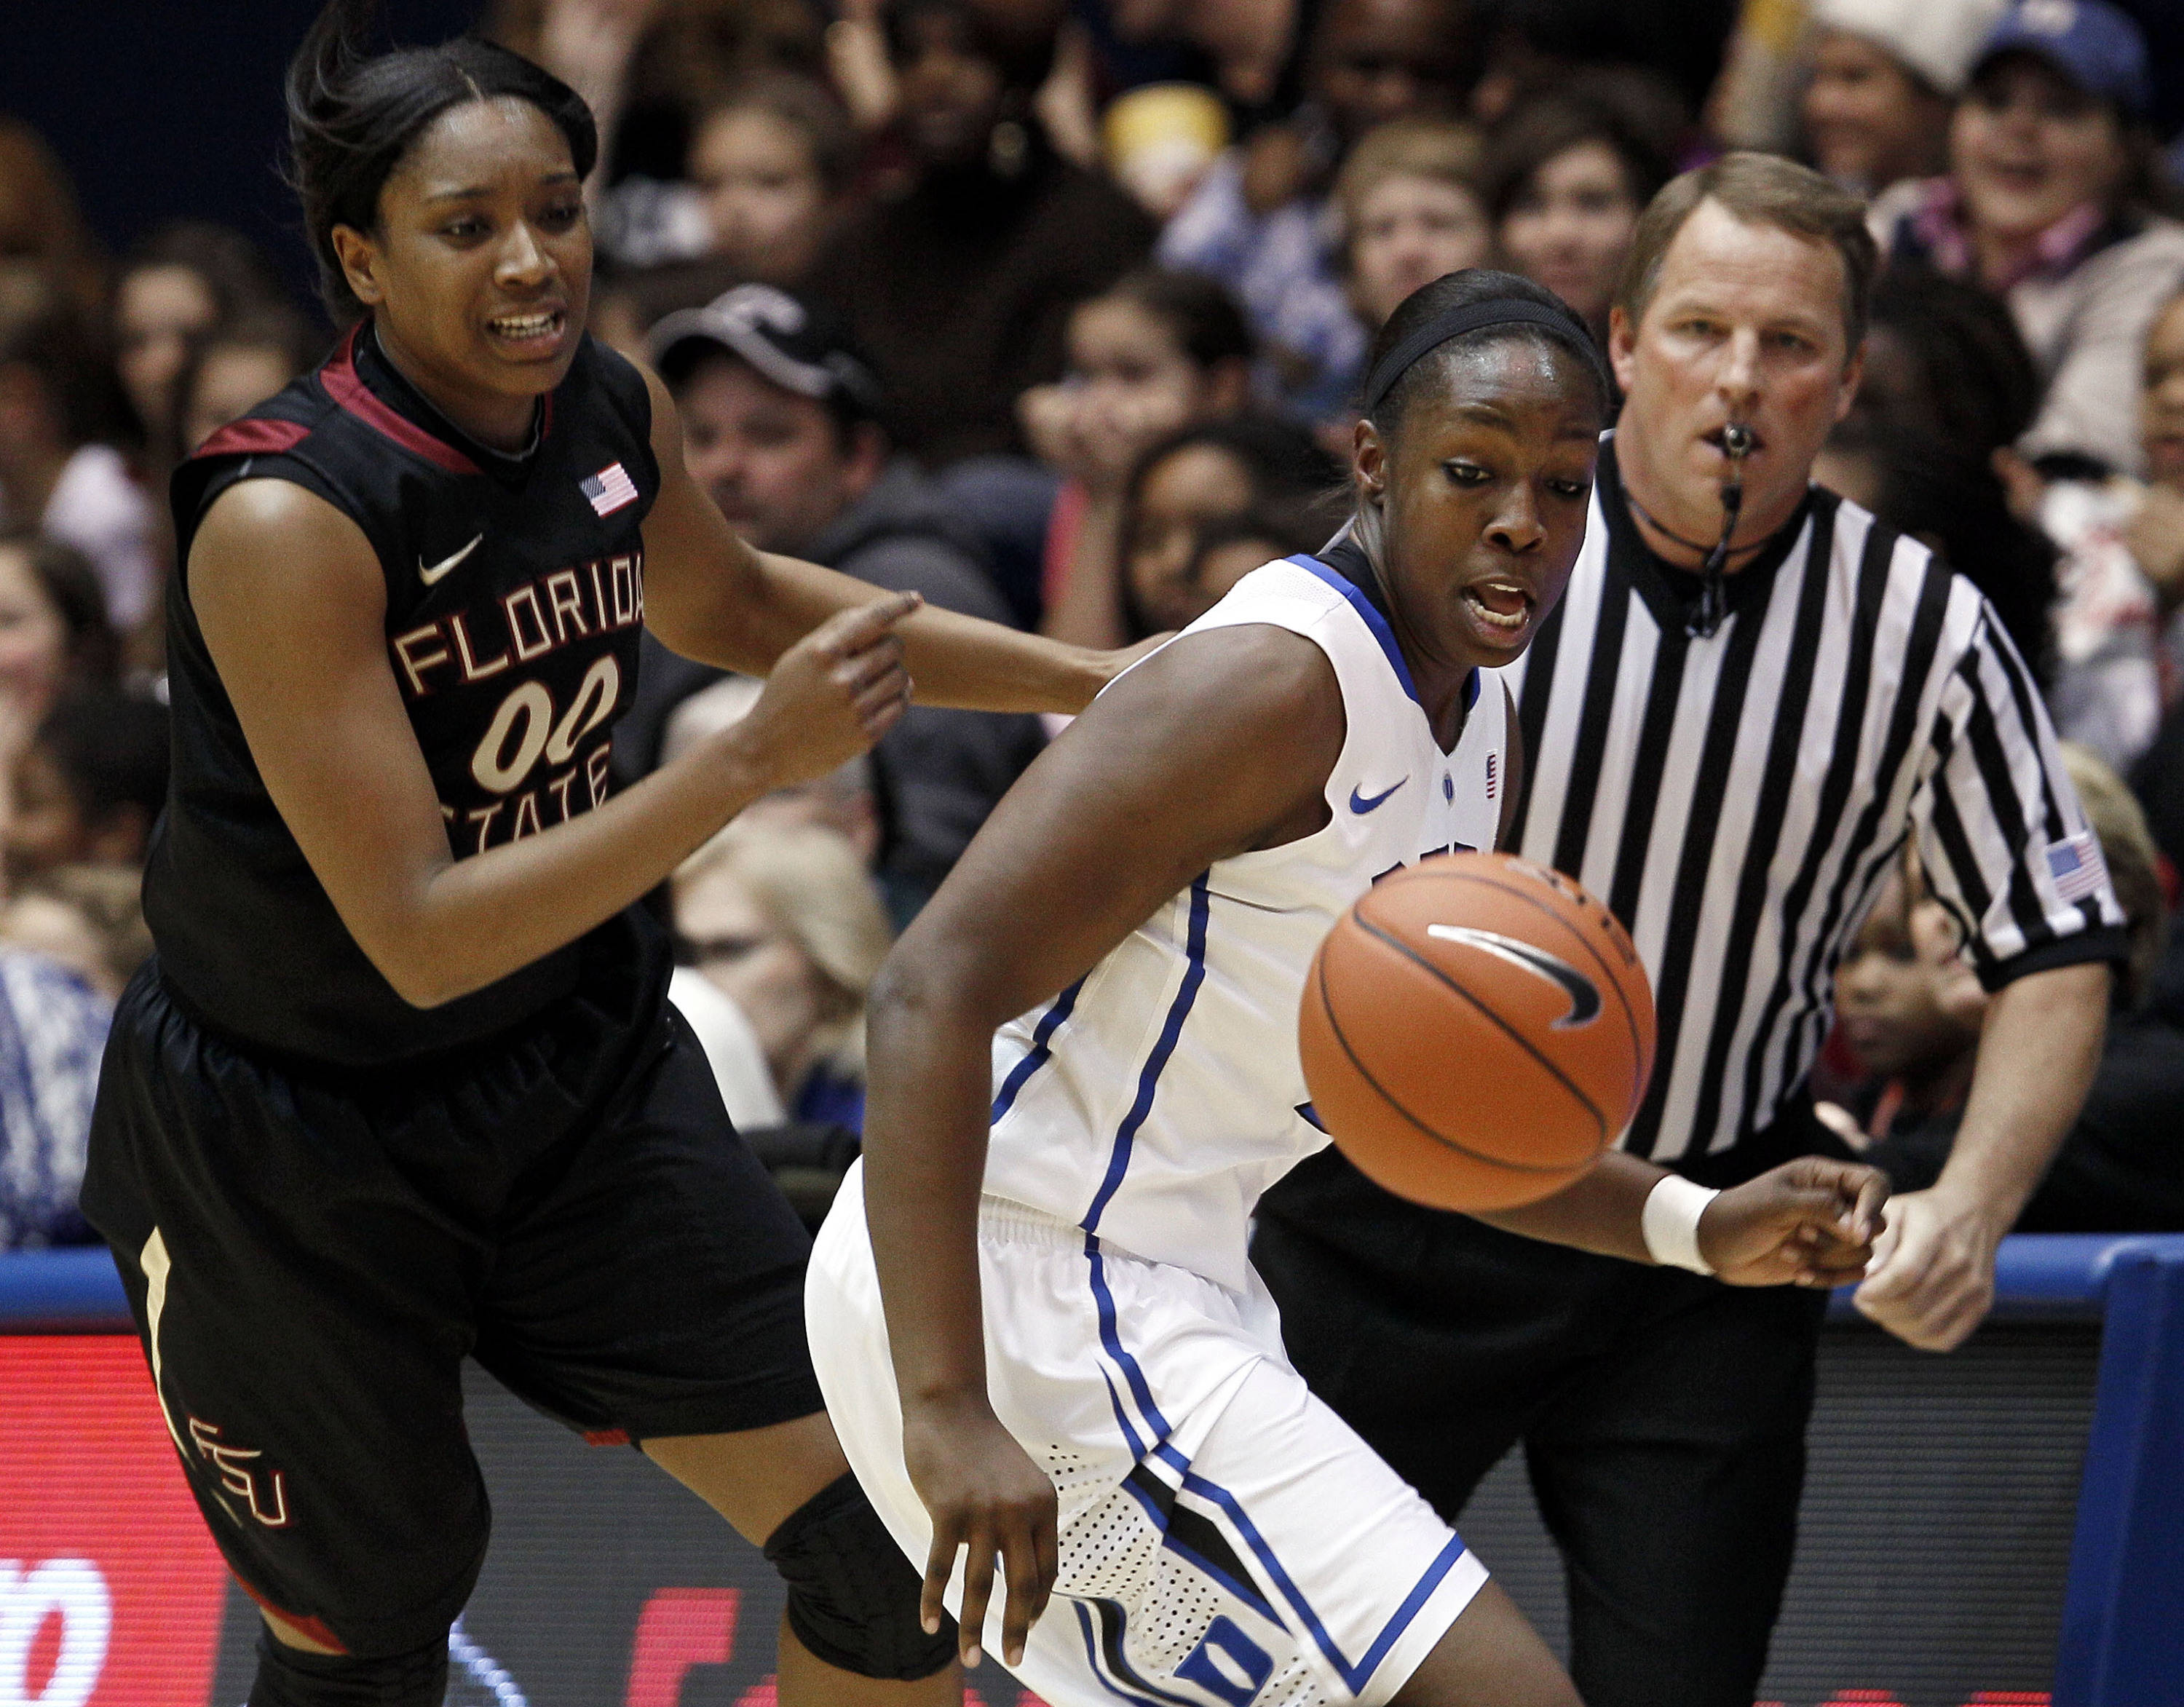 Florida State's Chasity Clayton (00) and Duke's Chelsea Gray chase a loose ball during the first half. (AP Photo/Gerry Broome)